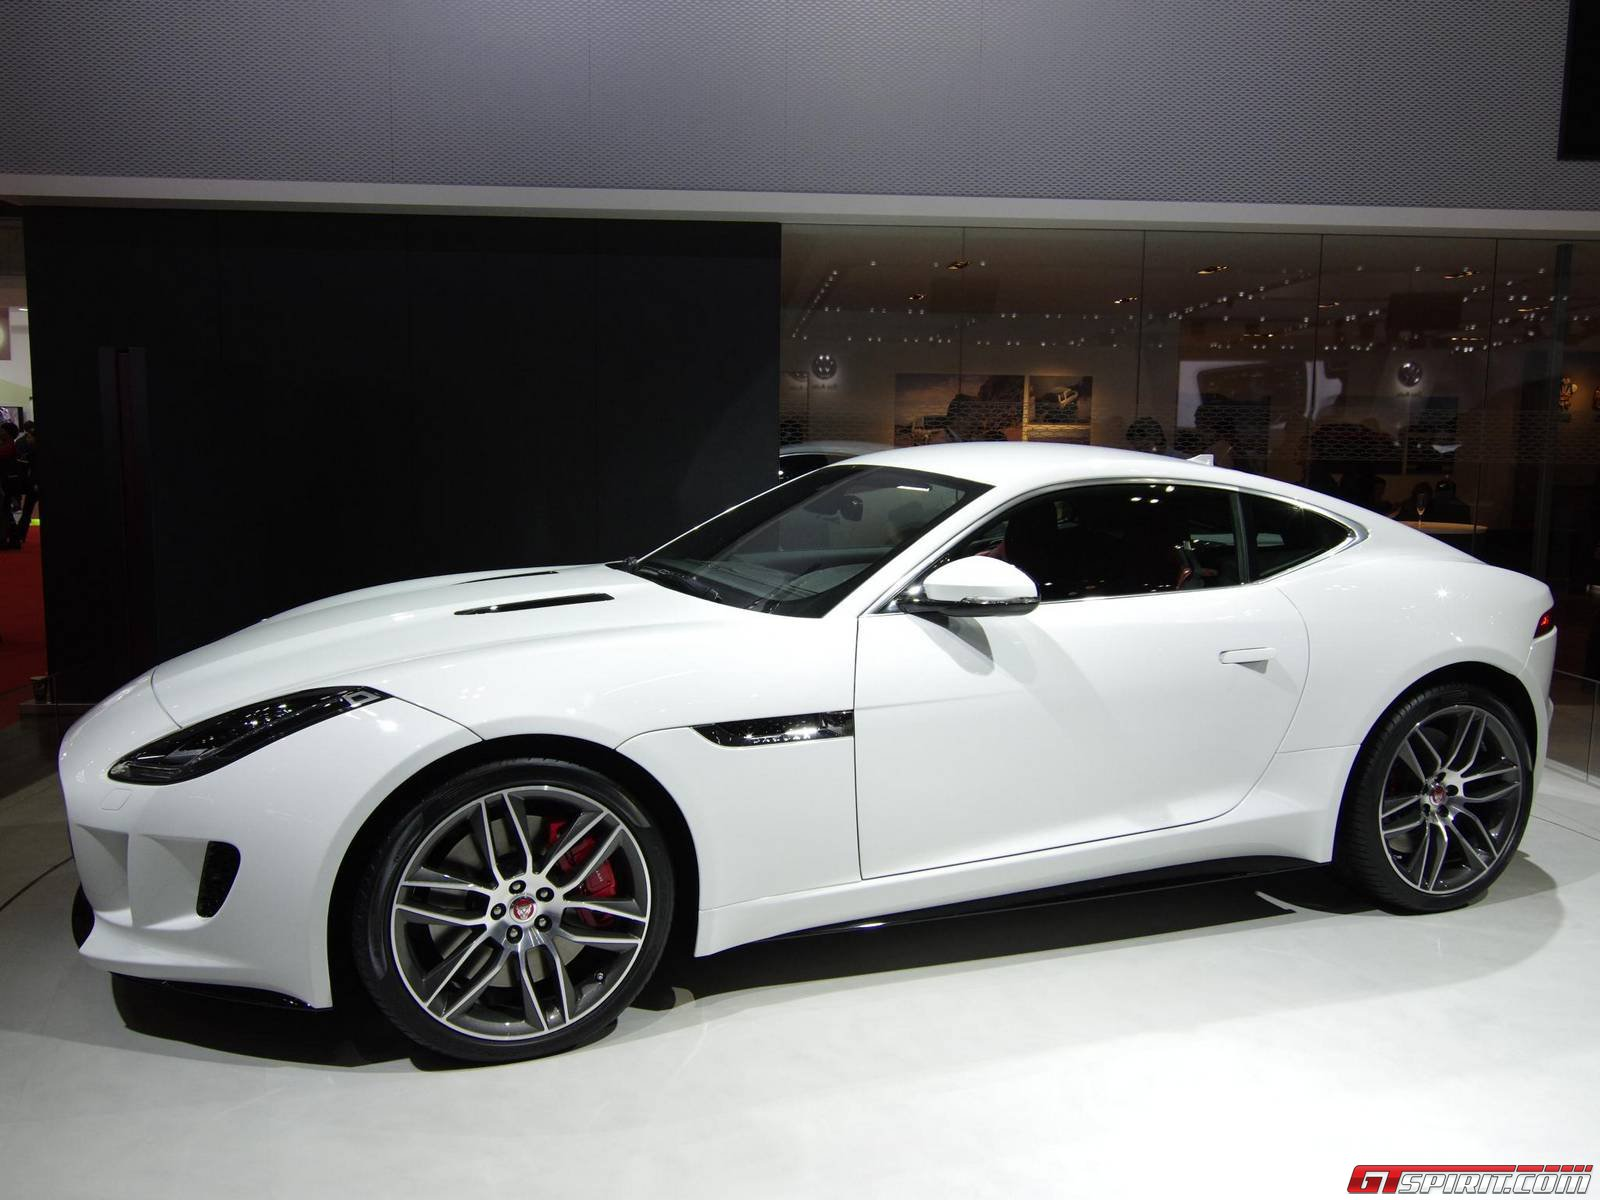 tokyo 2013 jaguar f type coupe. Black Bedroom Furniture Sets. Home Design Ideas